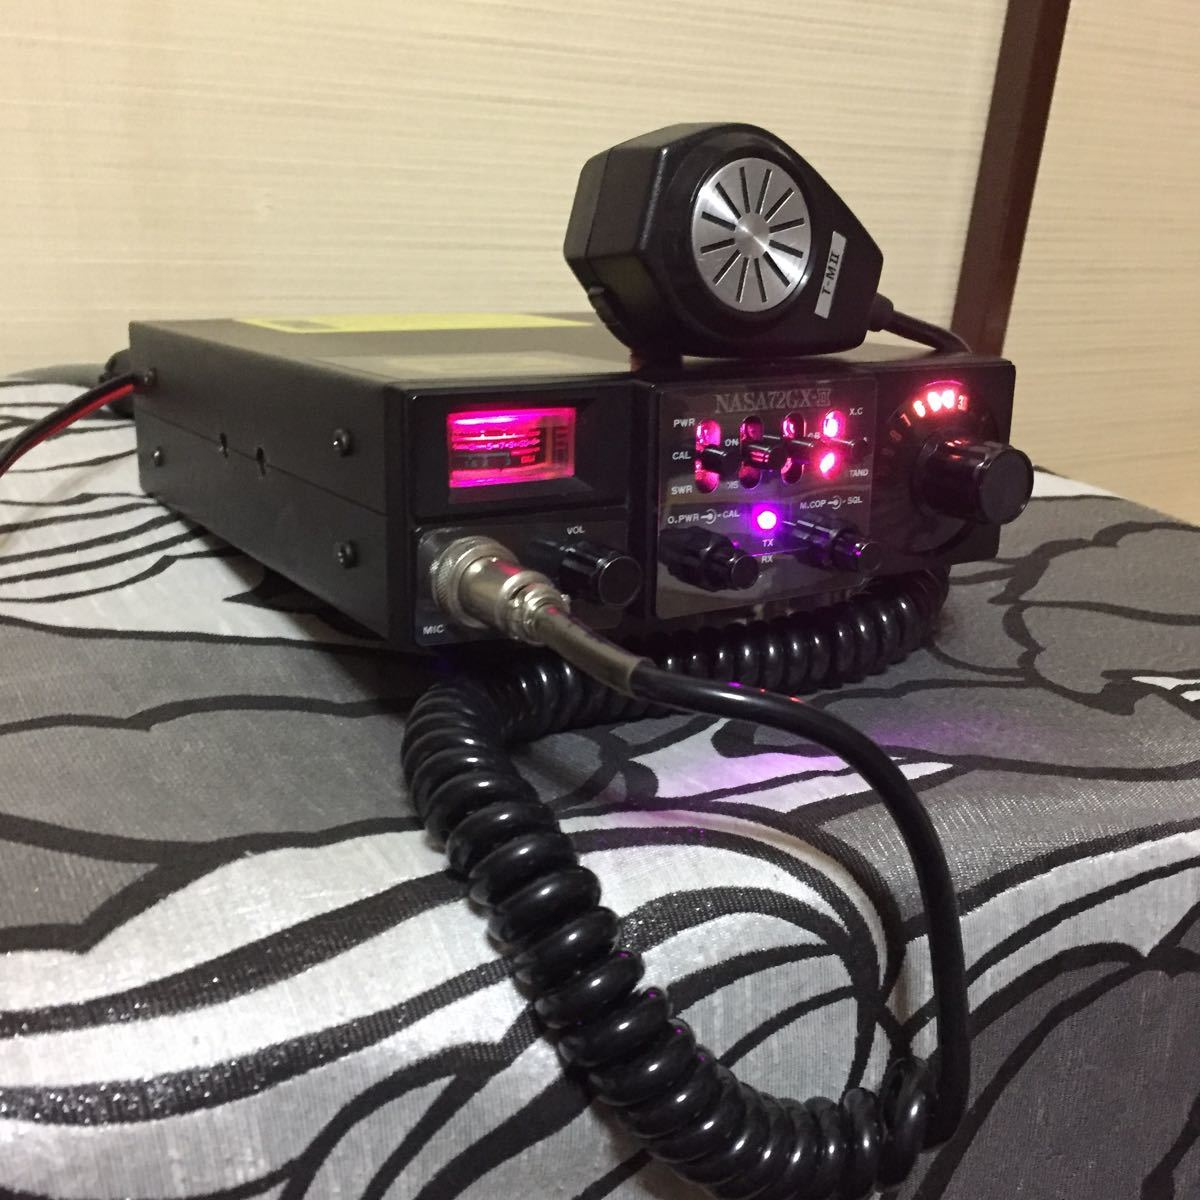 CB transceiver NASA72GX-II OHAMIyo shino SPeciAL Hurricane use switch beautiful goods black exchange condition excellent power cord new goods T-MII lock type Mike working properly goods